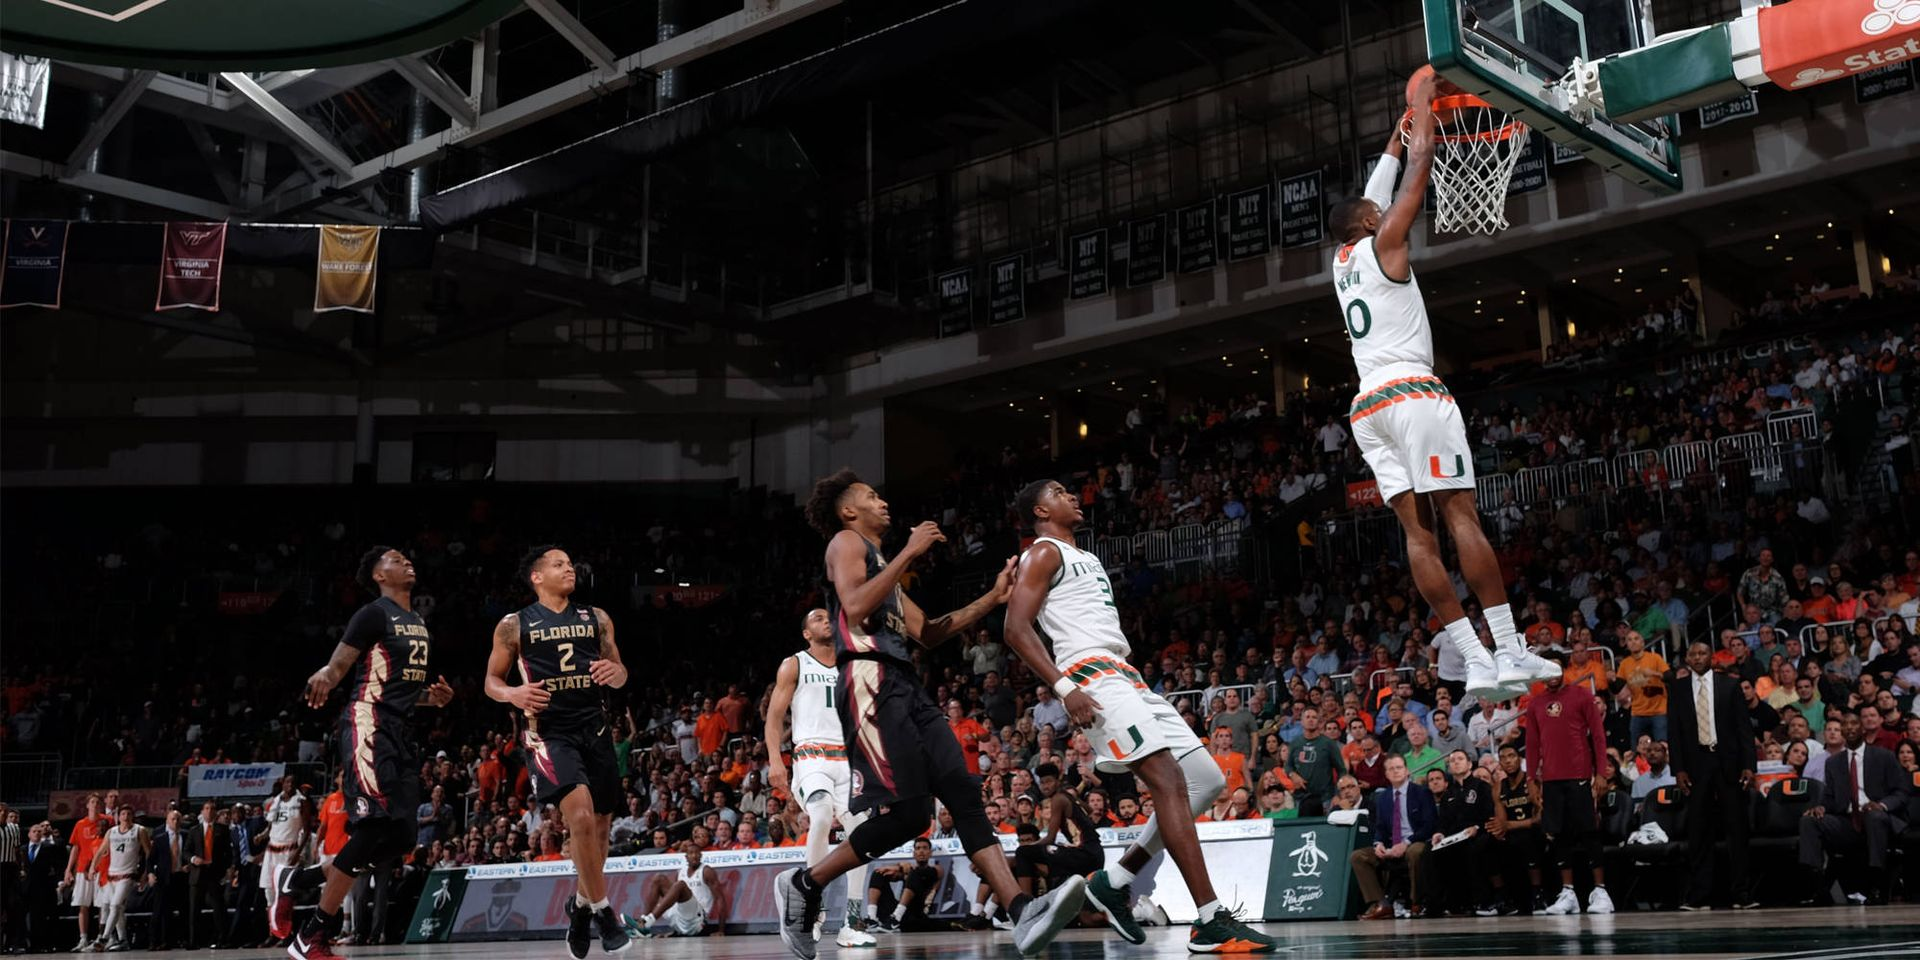 Canes Fall 75-57 to No. 15/16 Florida State